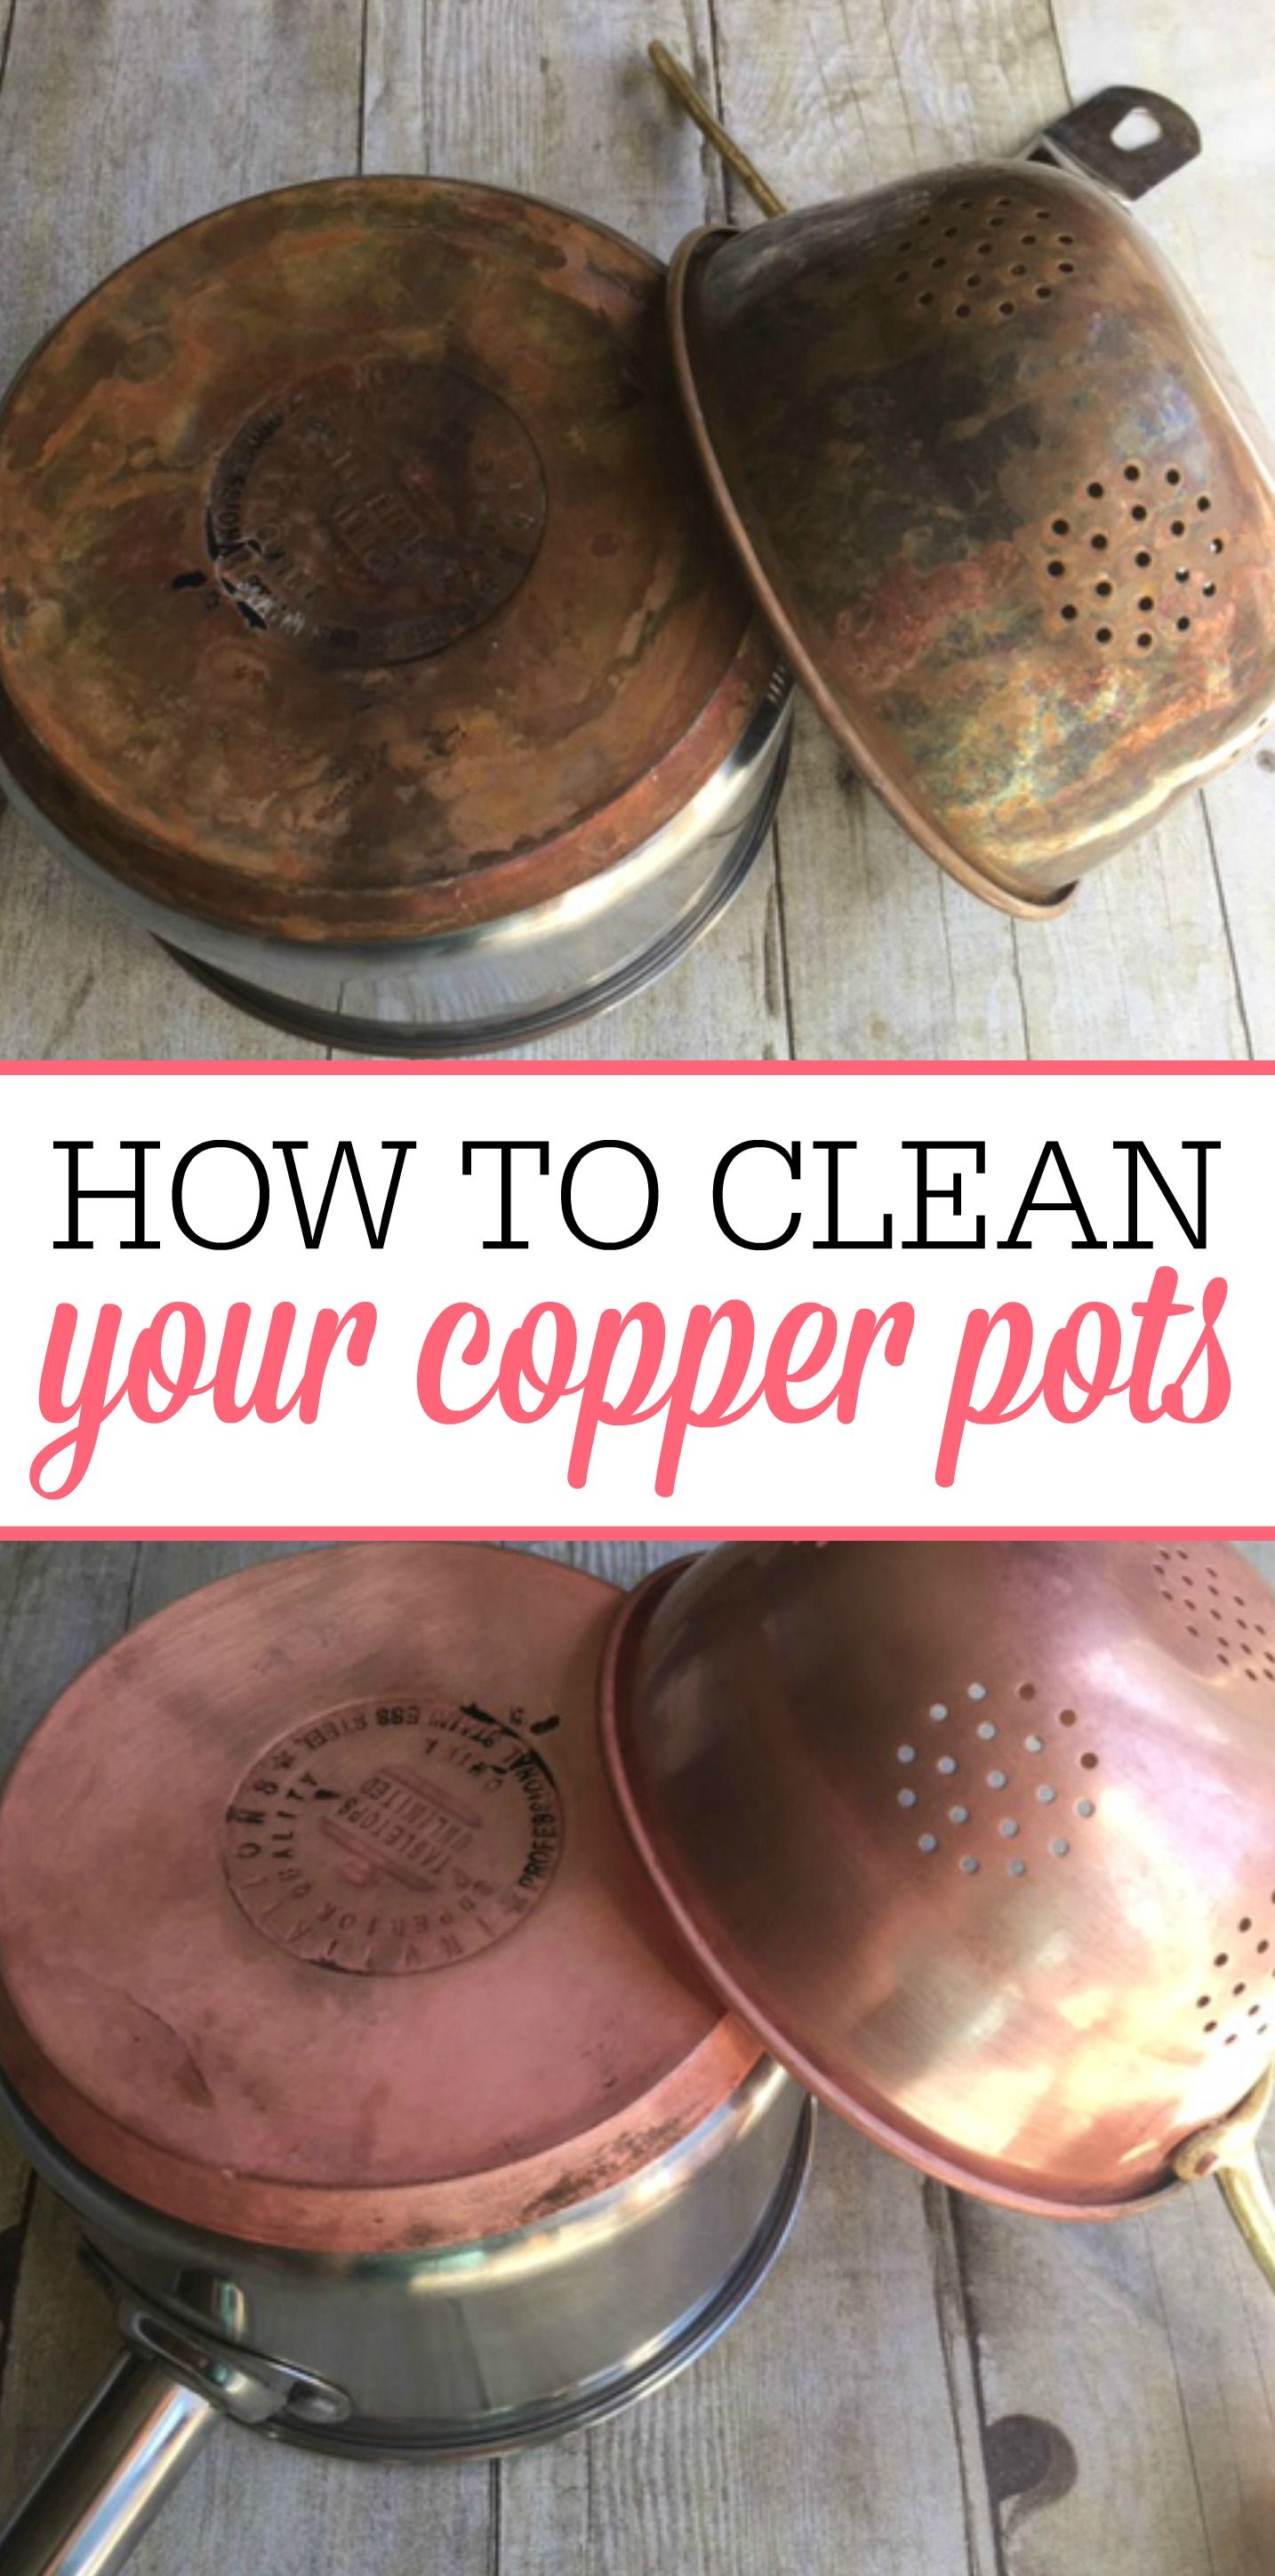 Easy tips for cleaning copper pots how to clean copper